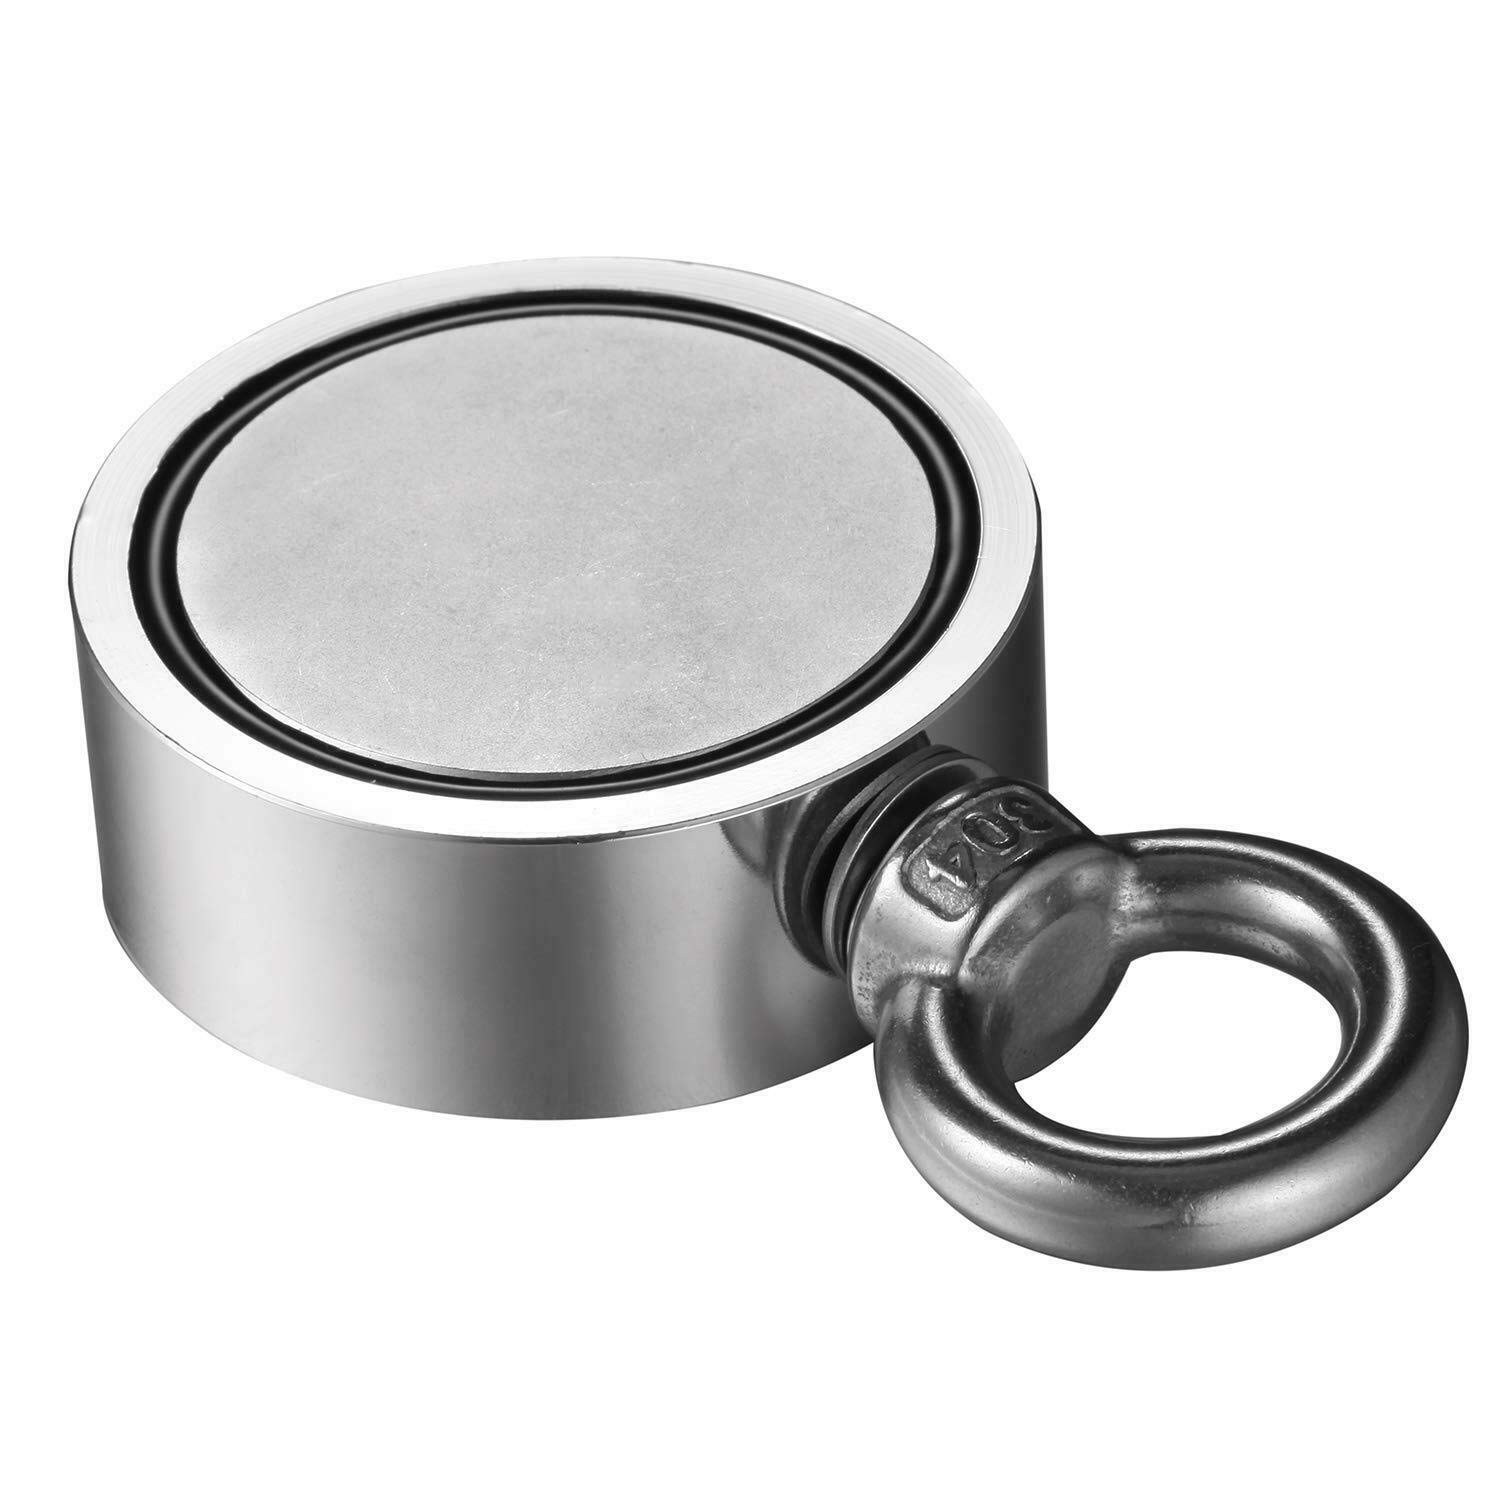 Round Double Sided Fishing Magnet Super Strong Neodymium Fishing Magnets Double-Sided Magnetic Round Recovery Salvage Brute Magnet with Eyebolt Pulling Force Magnet for River Lake Fishing 600lbs